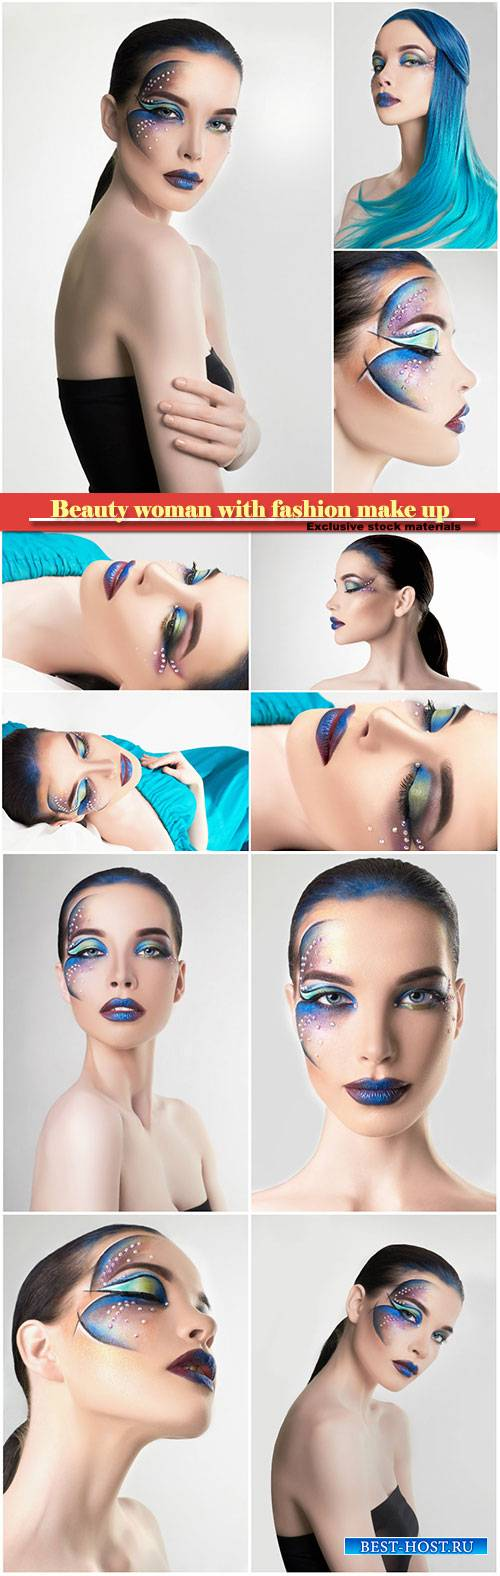 Beauty woman with fashion make up